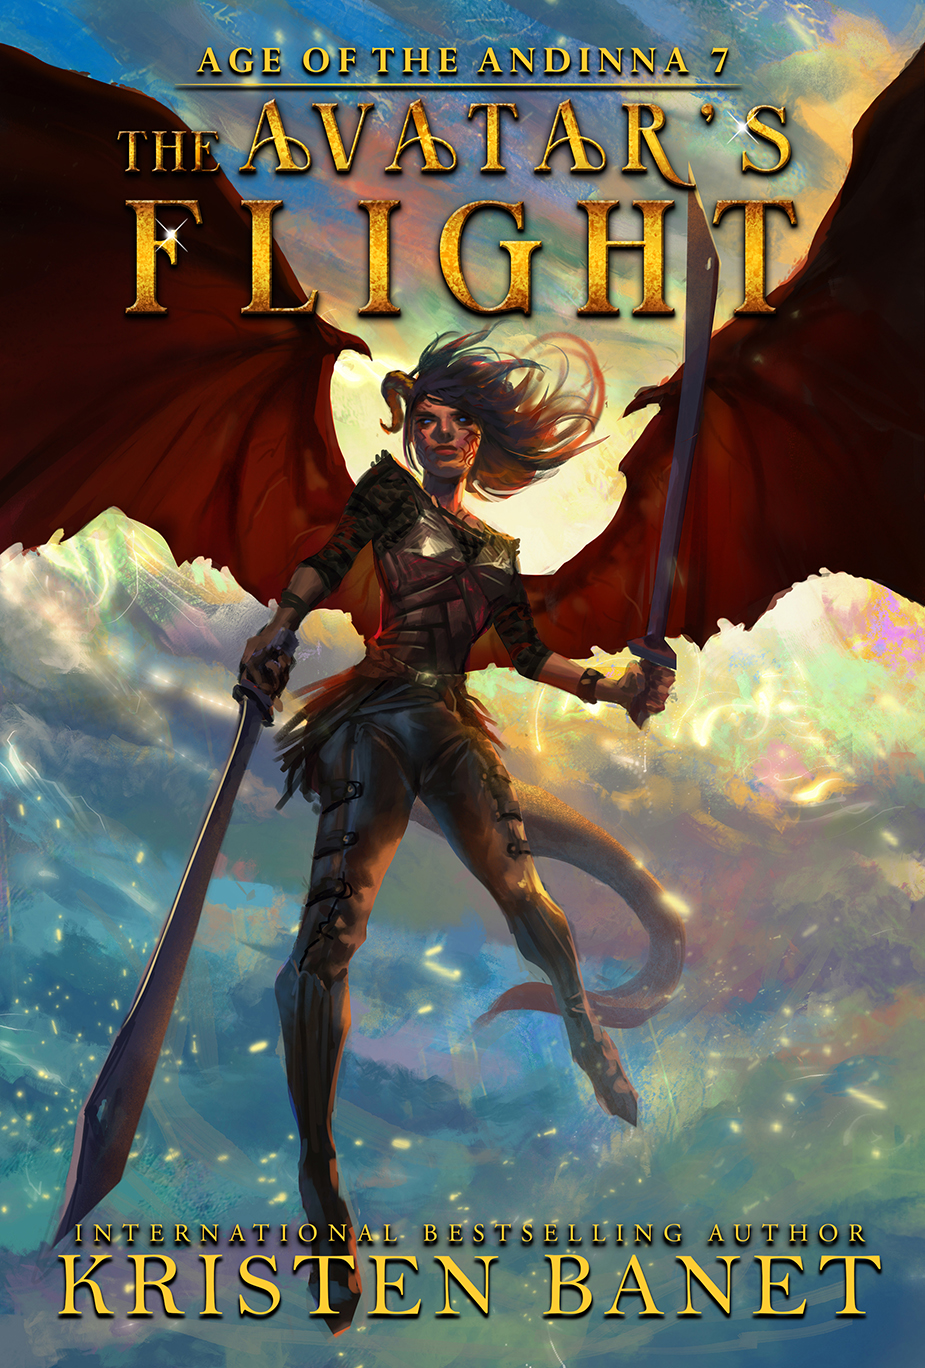 The Avatar's Flight, Age of the Andinna Book 7 by Kristen Banet